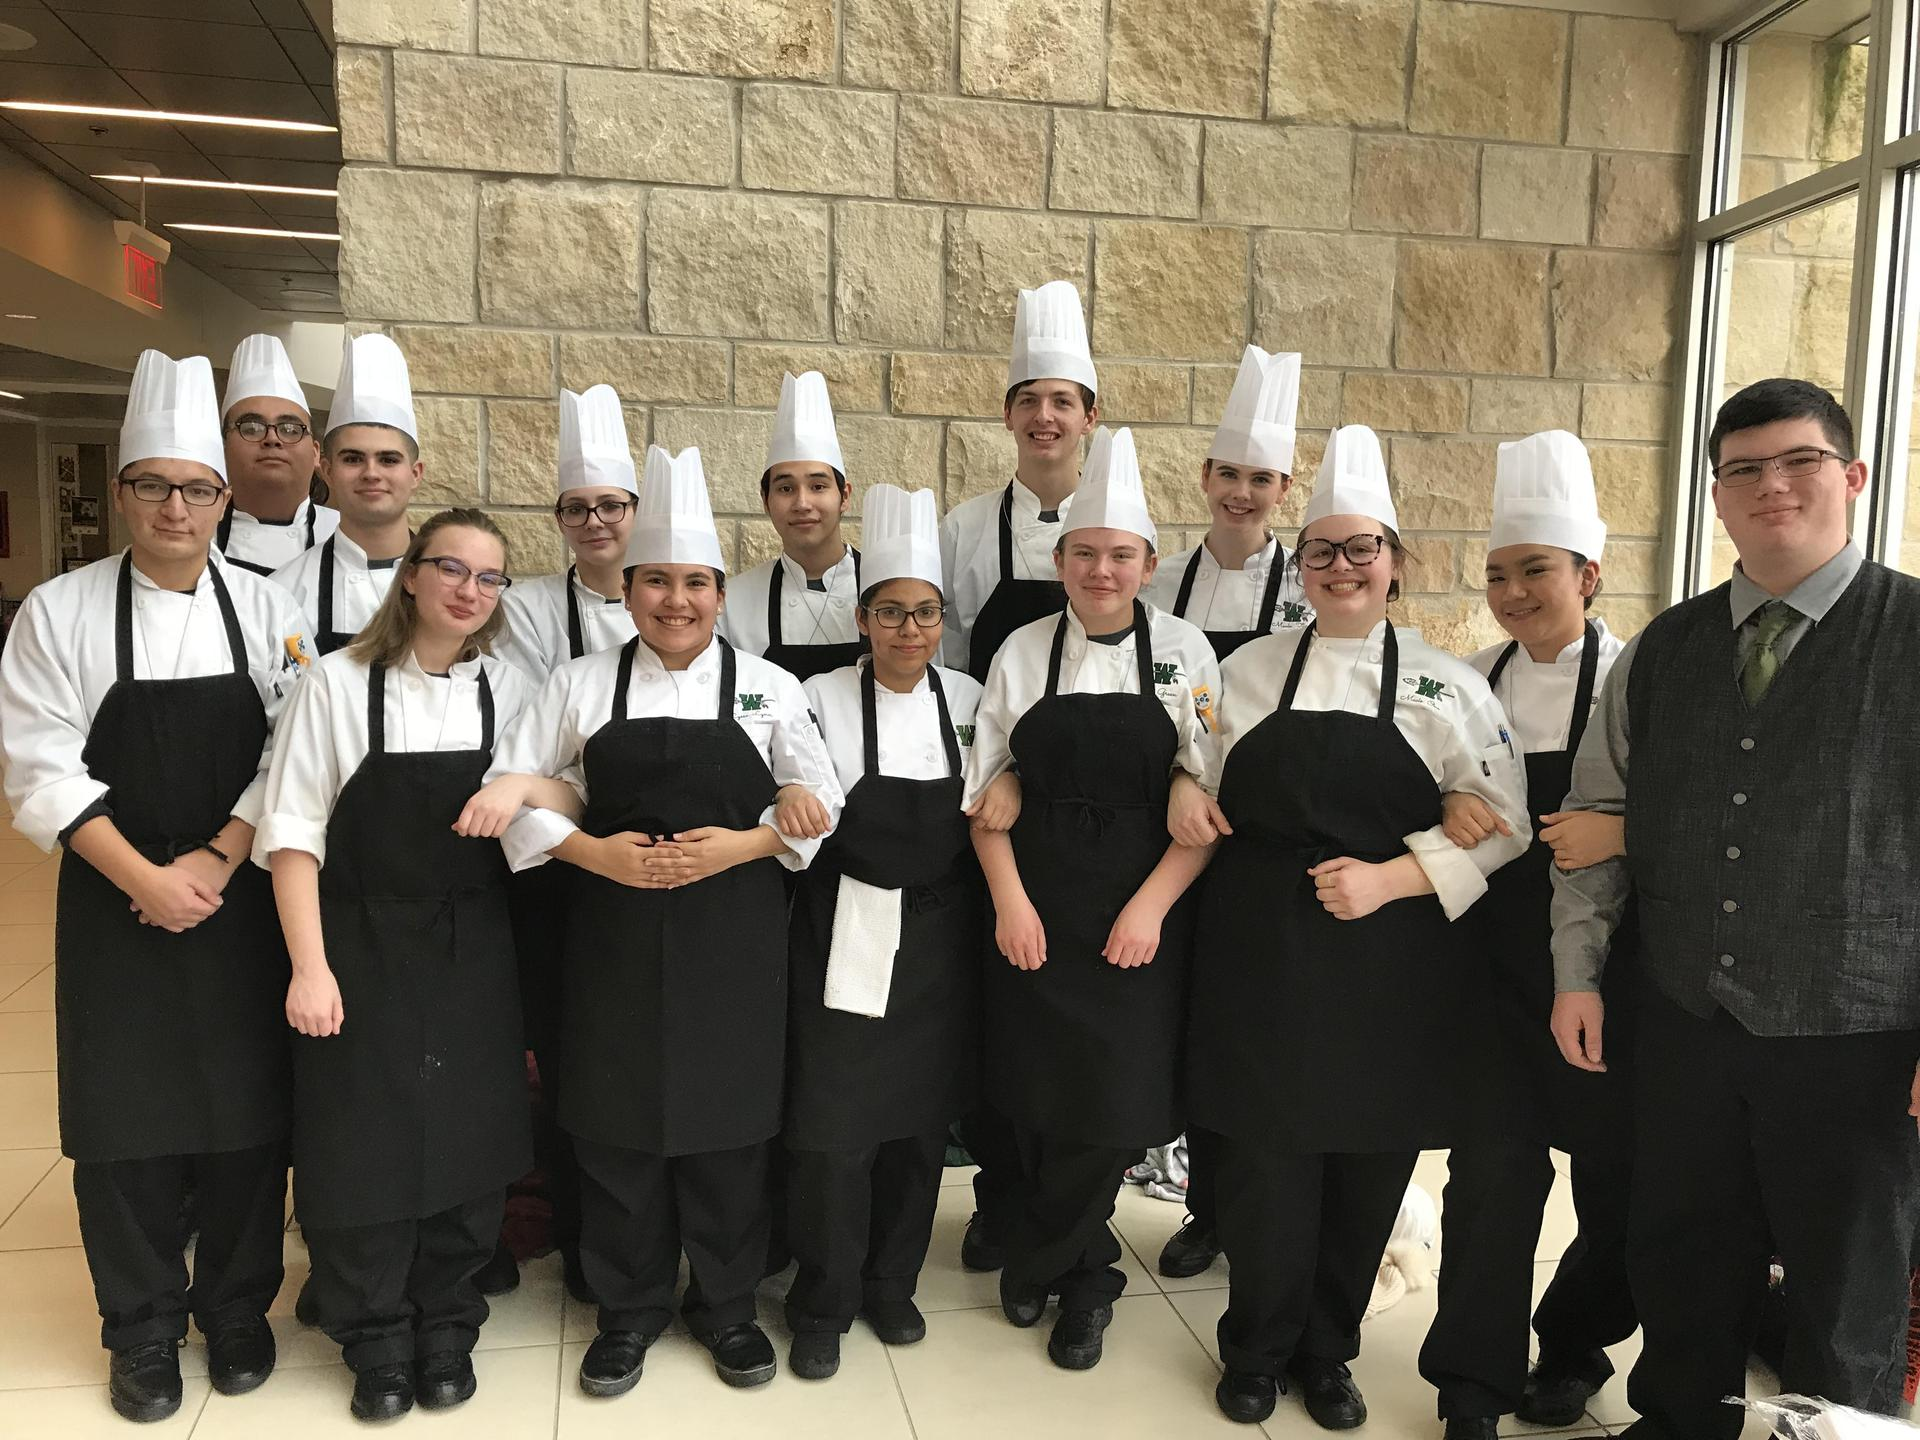 group of culinary students in aprons and chef hats